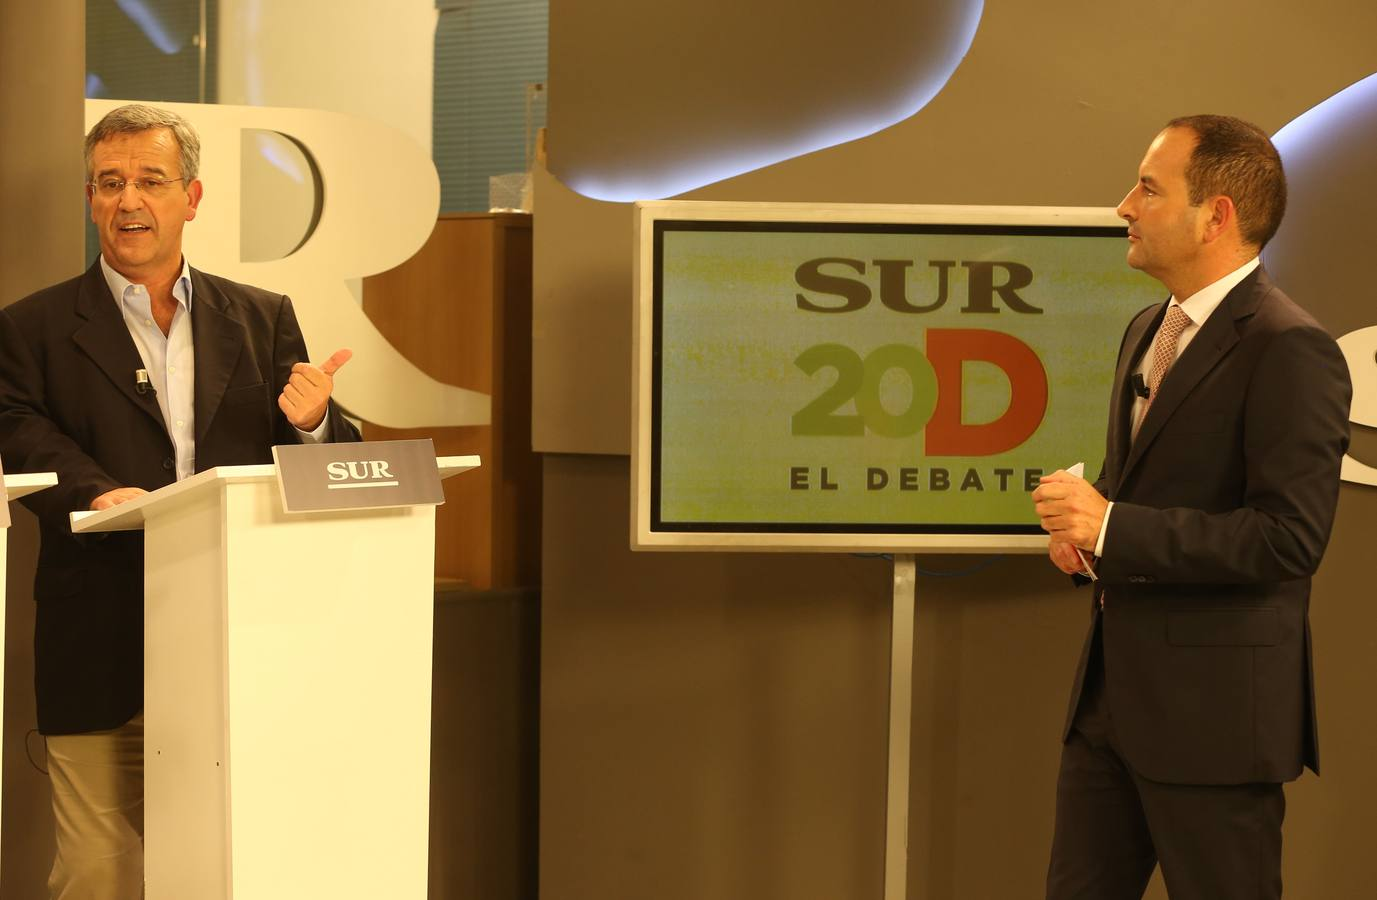 El debate a cinco en SUR, en fotos